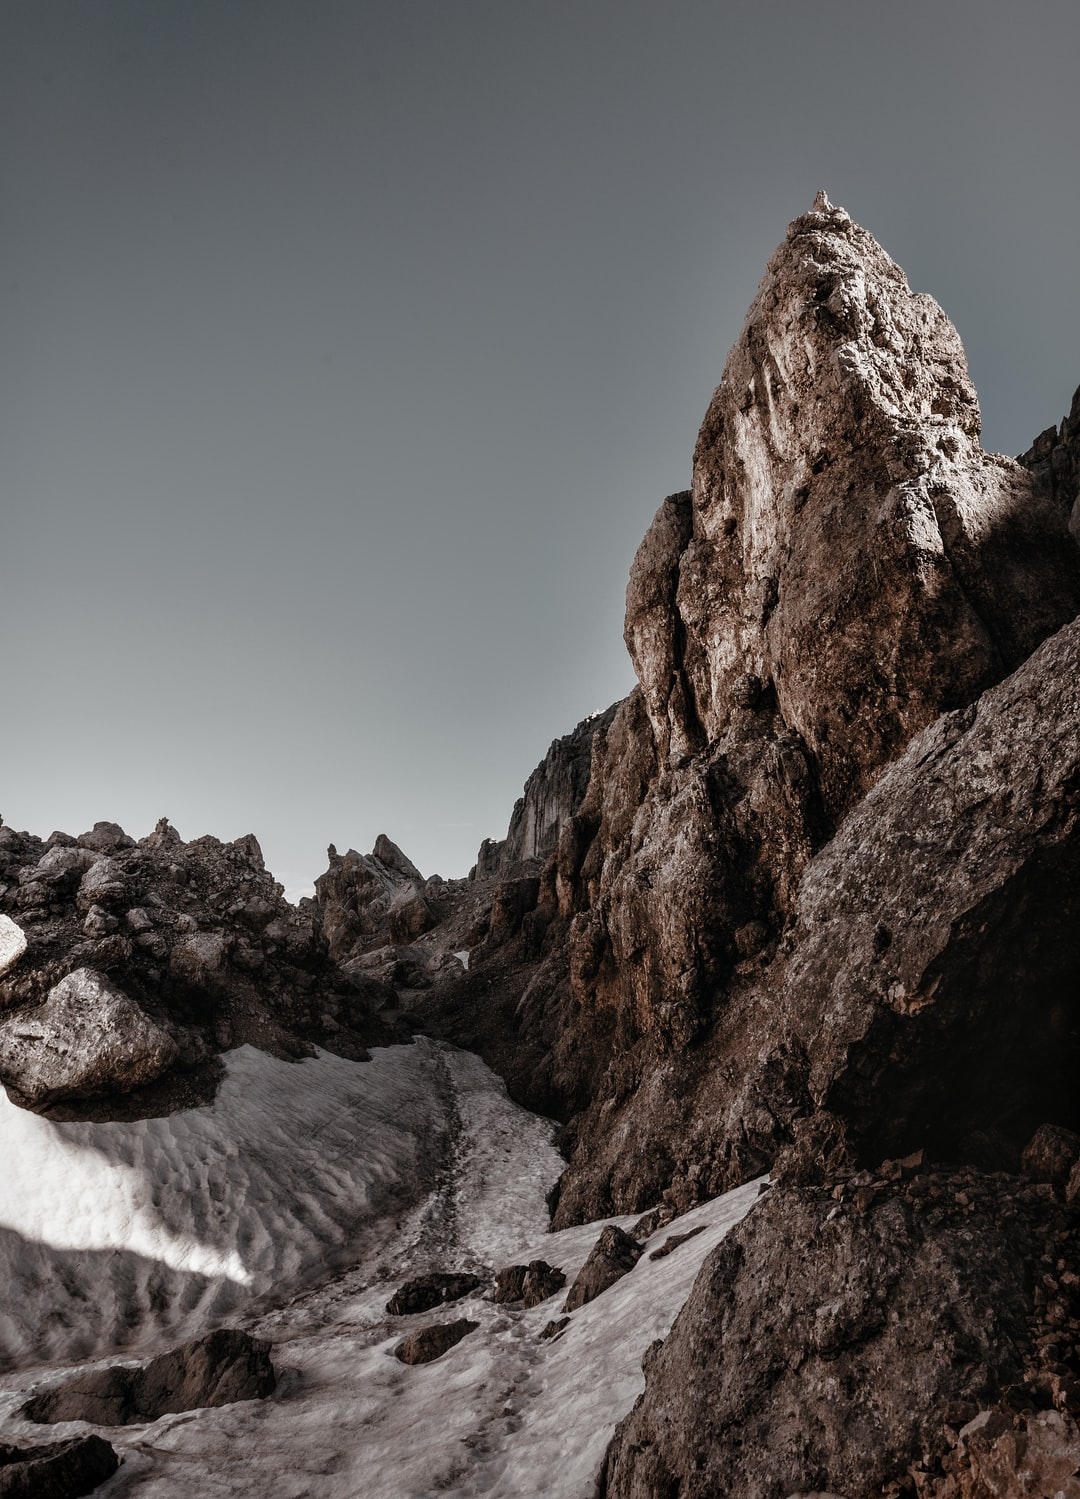 The way is slippery and dirty, rest of Sahara dust covers the path to the summit!